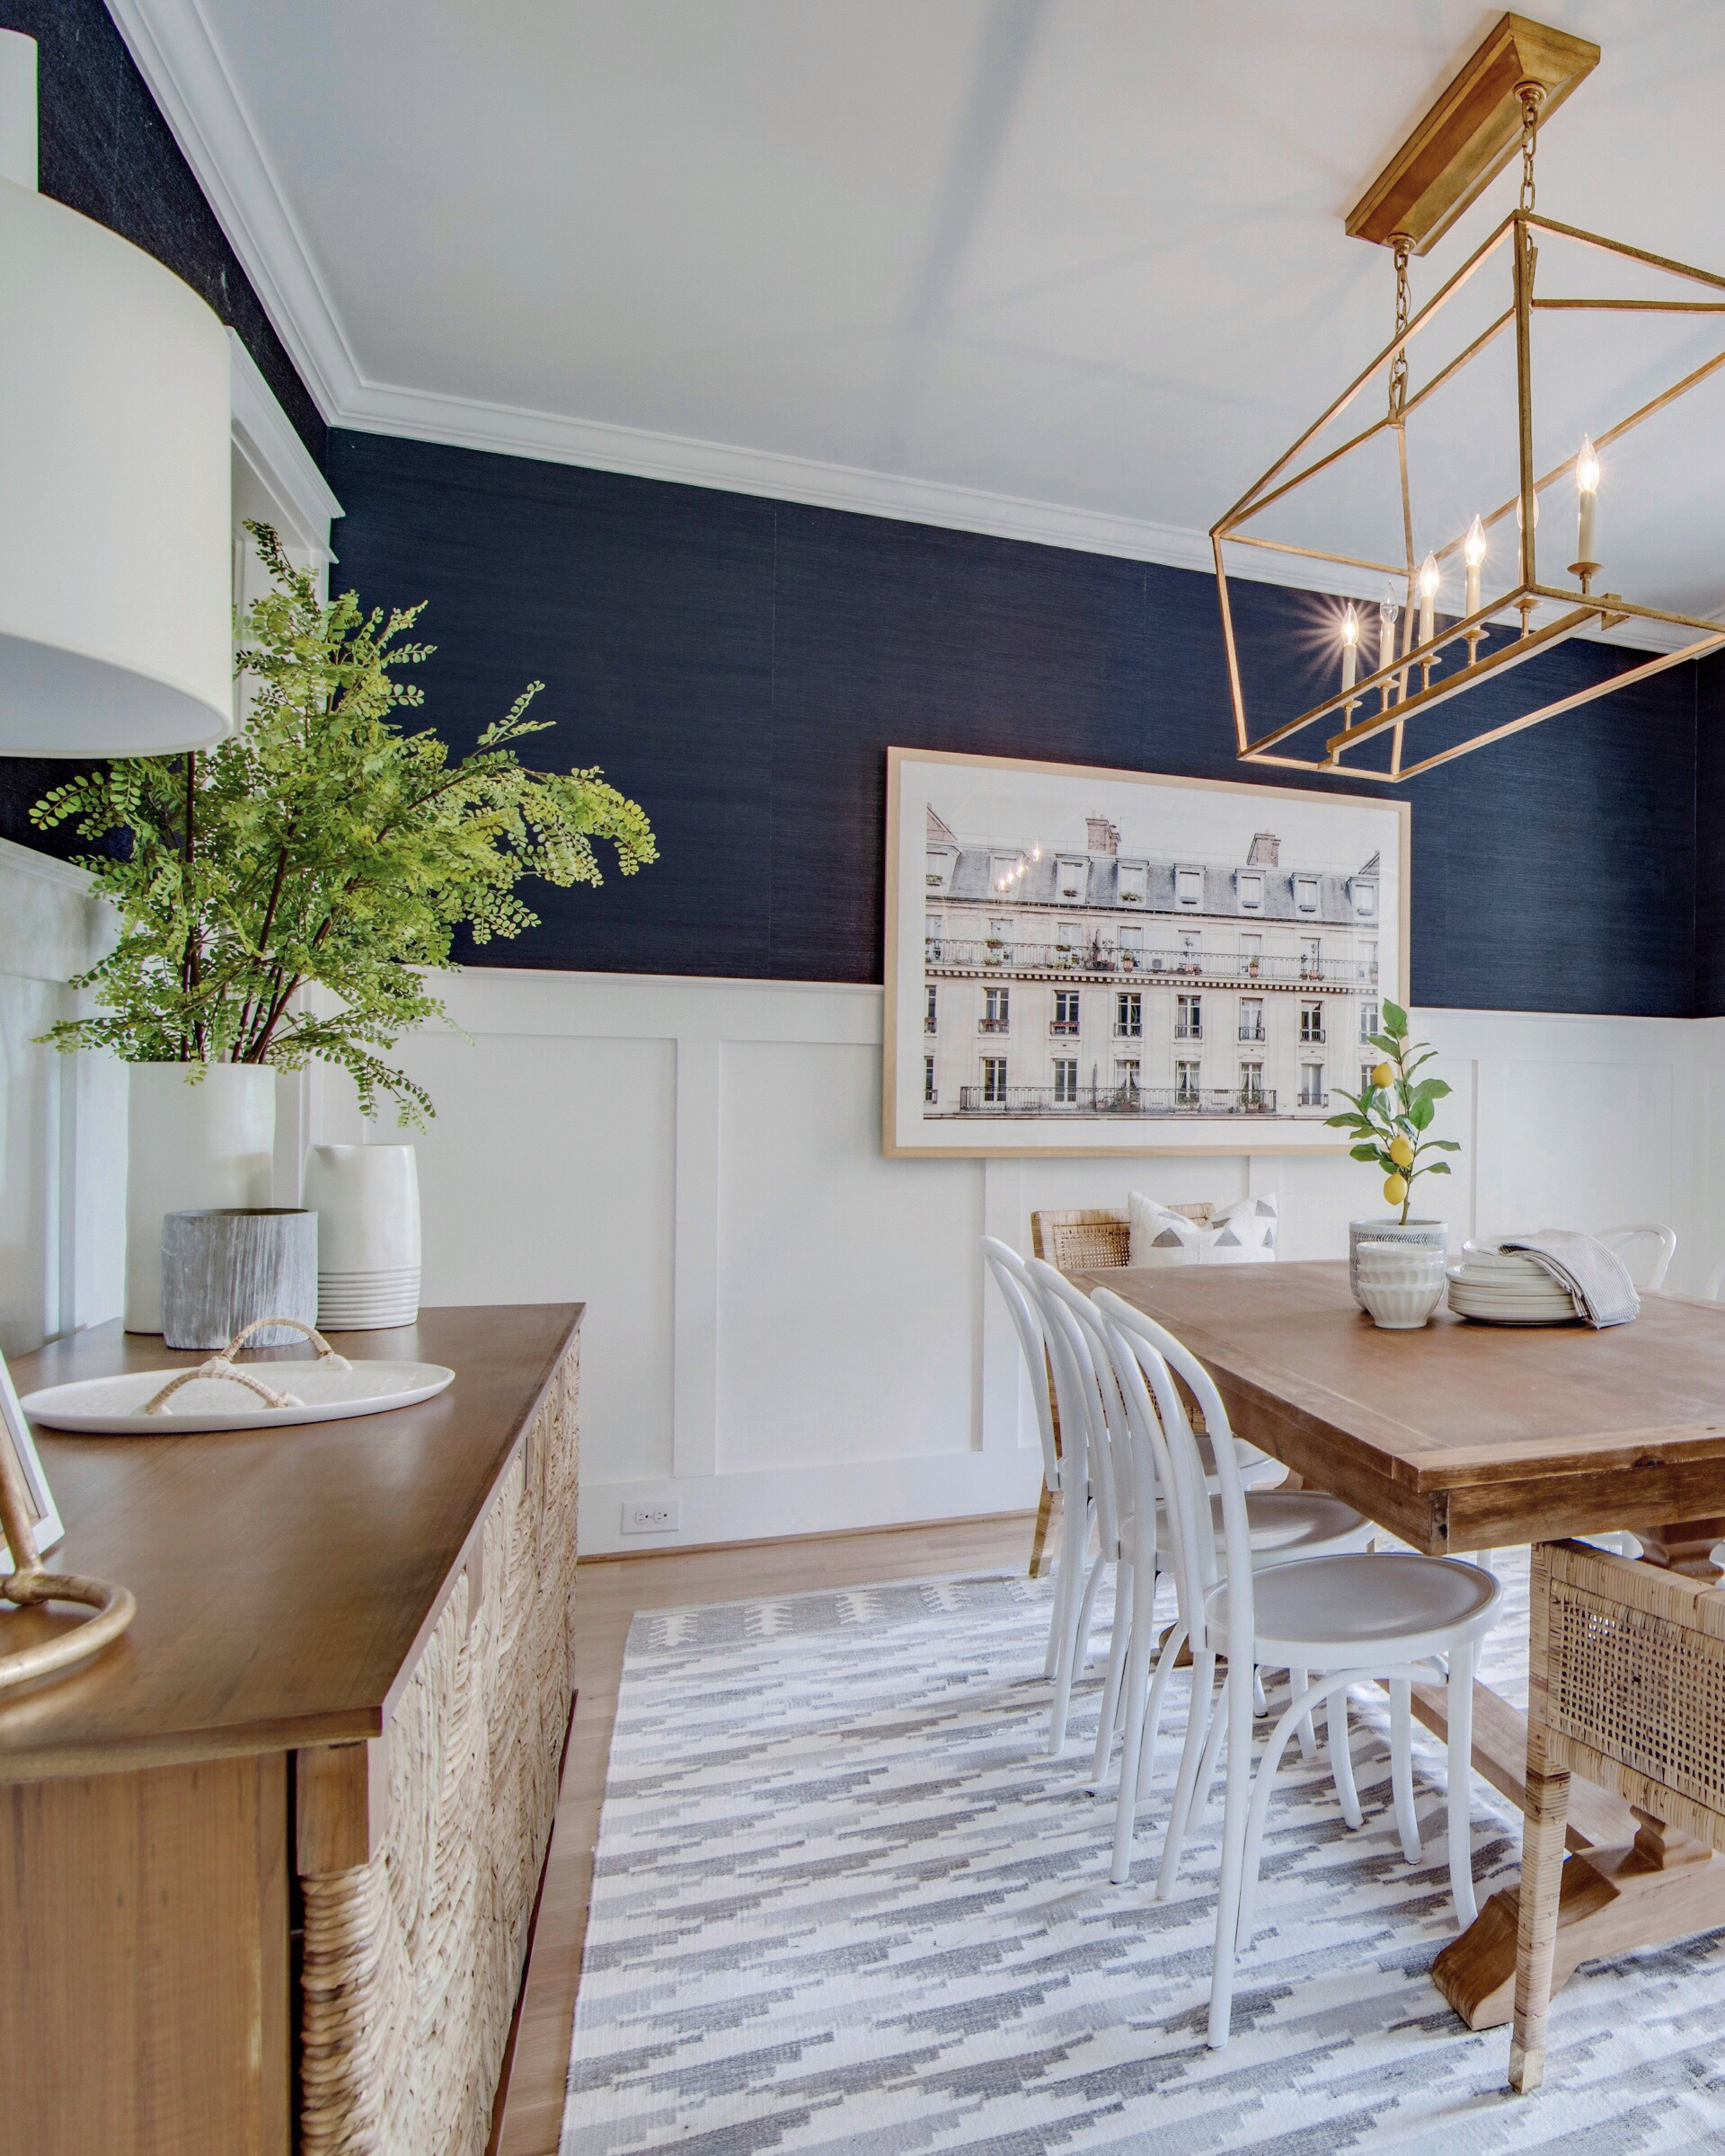 The Navy Wallpapered Dining Room Reveal!